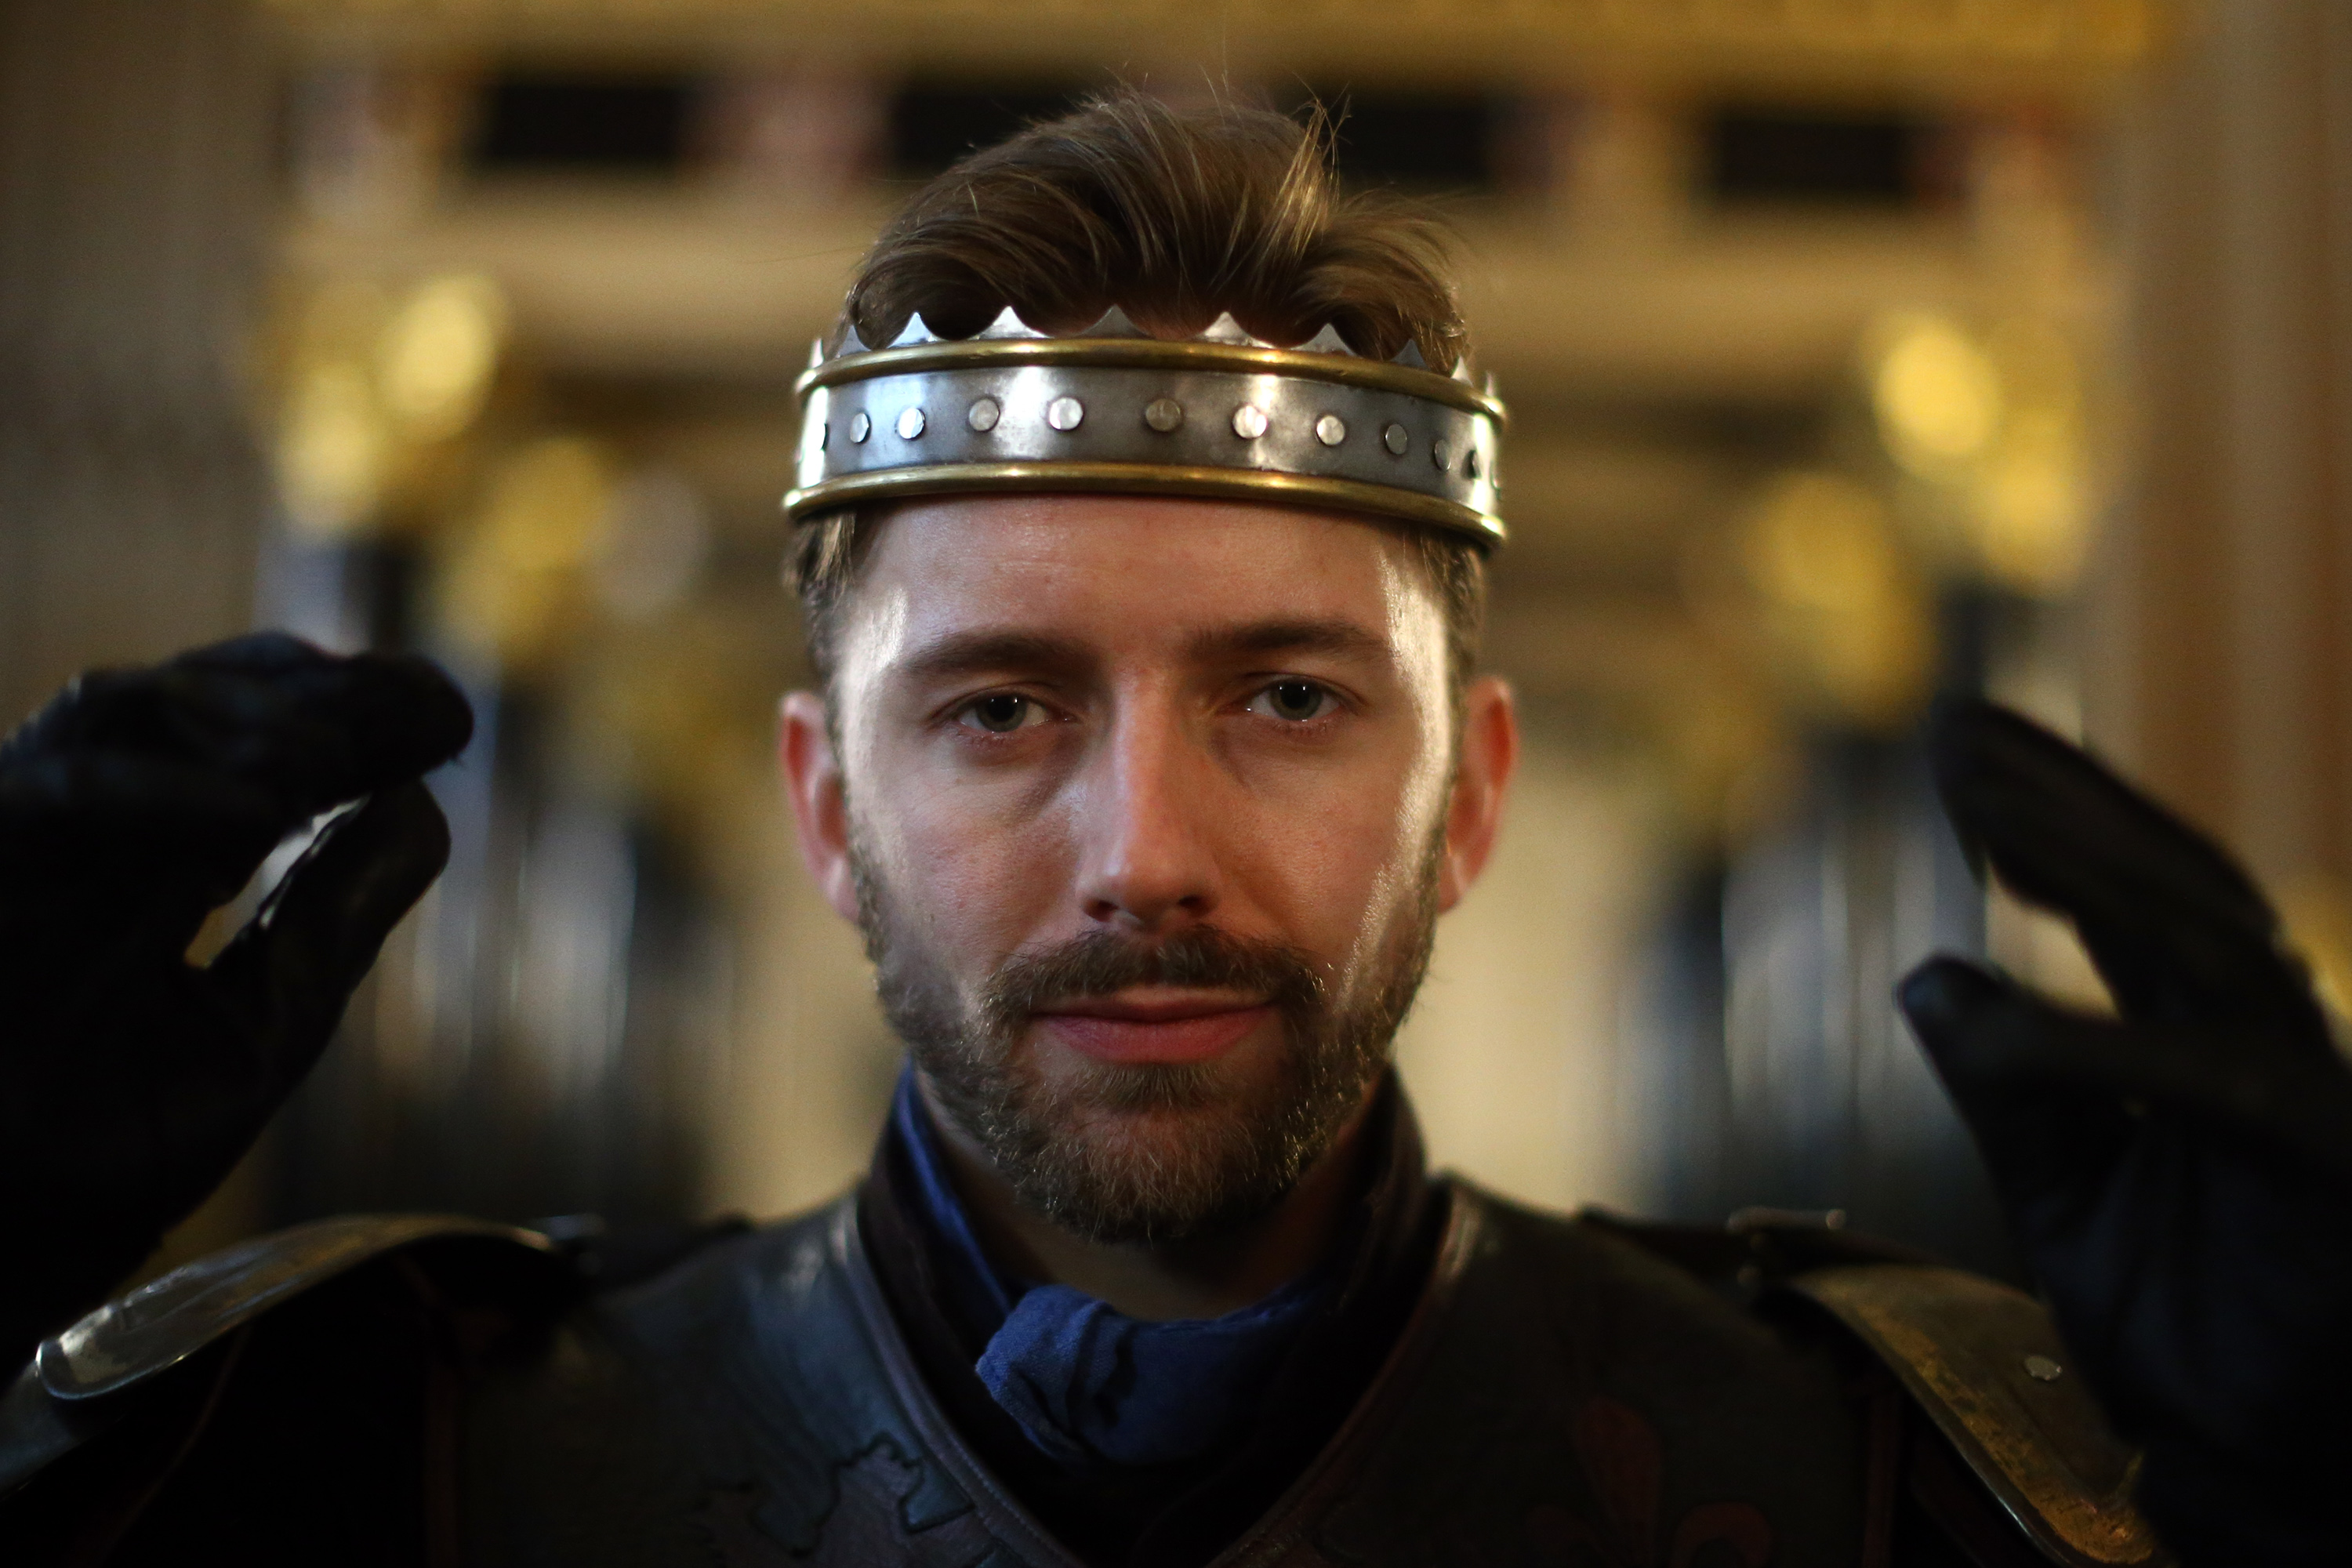 The 600th Anniversary Of The Battle Of Agincourt Is Commemorated At Westminster Abbey